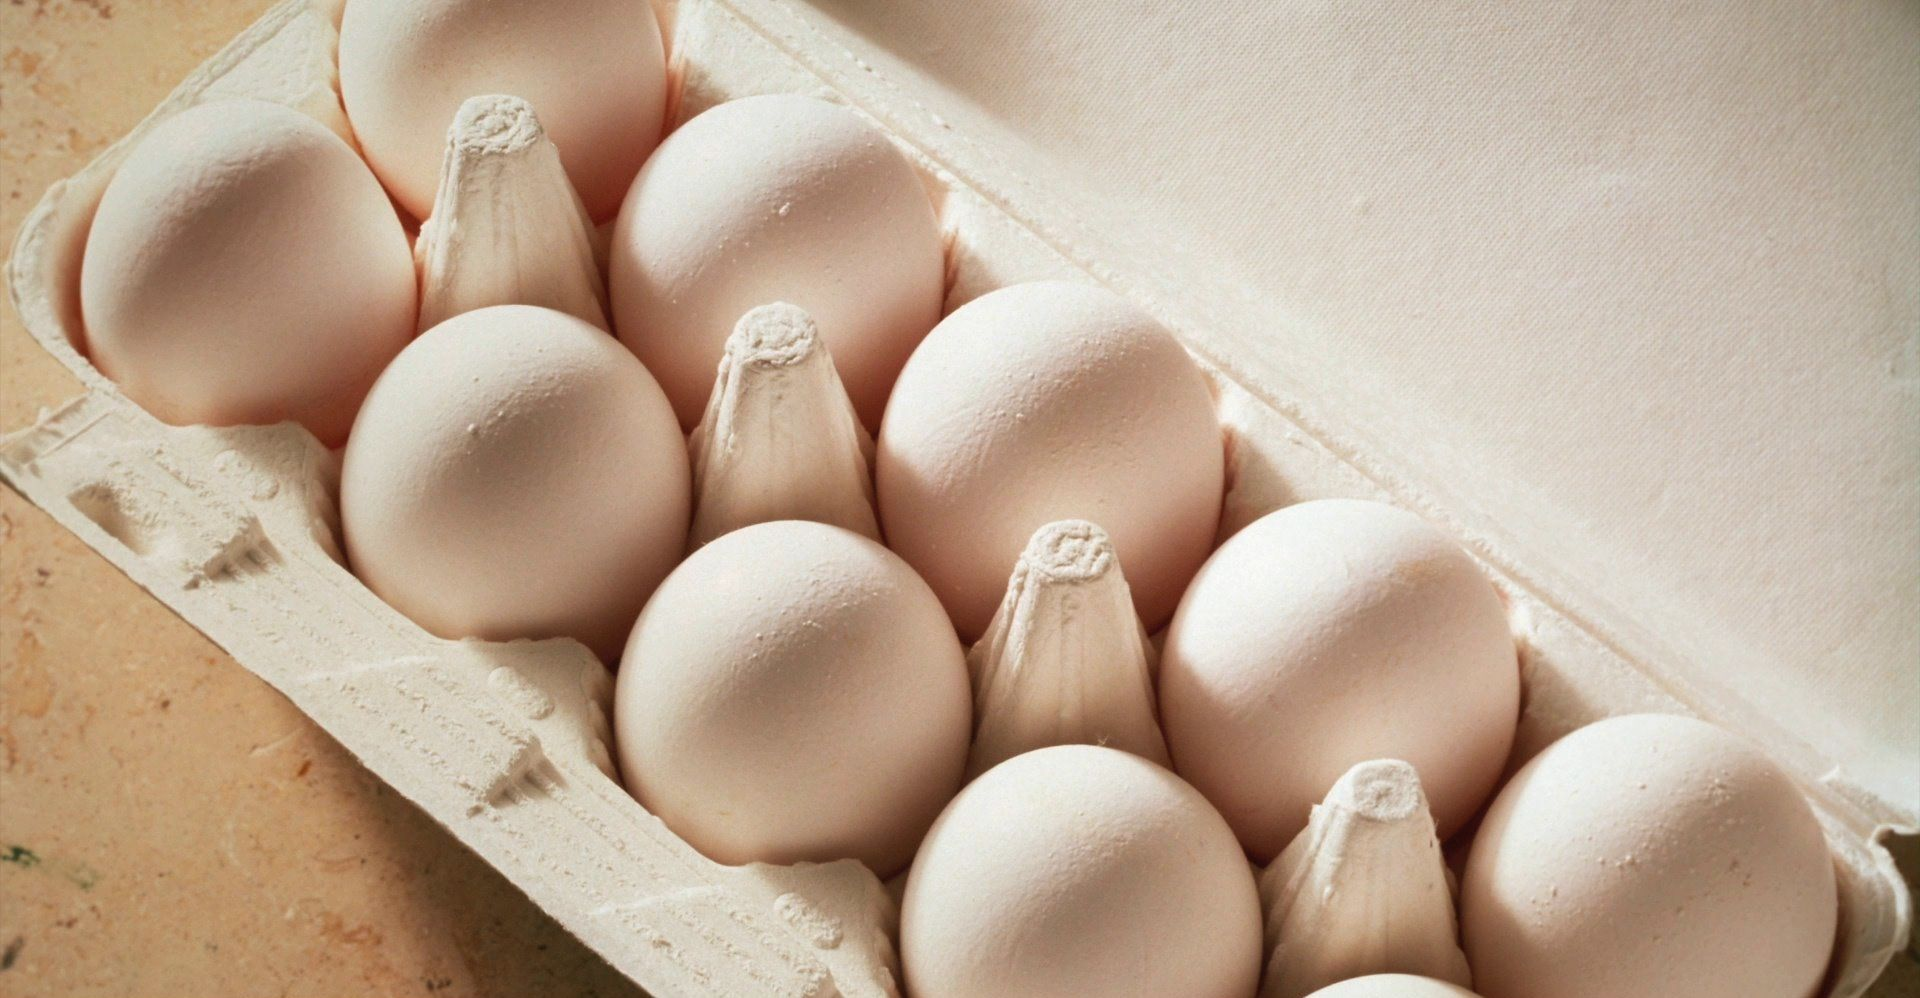 Eggs at the grocery store might be older than you think!